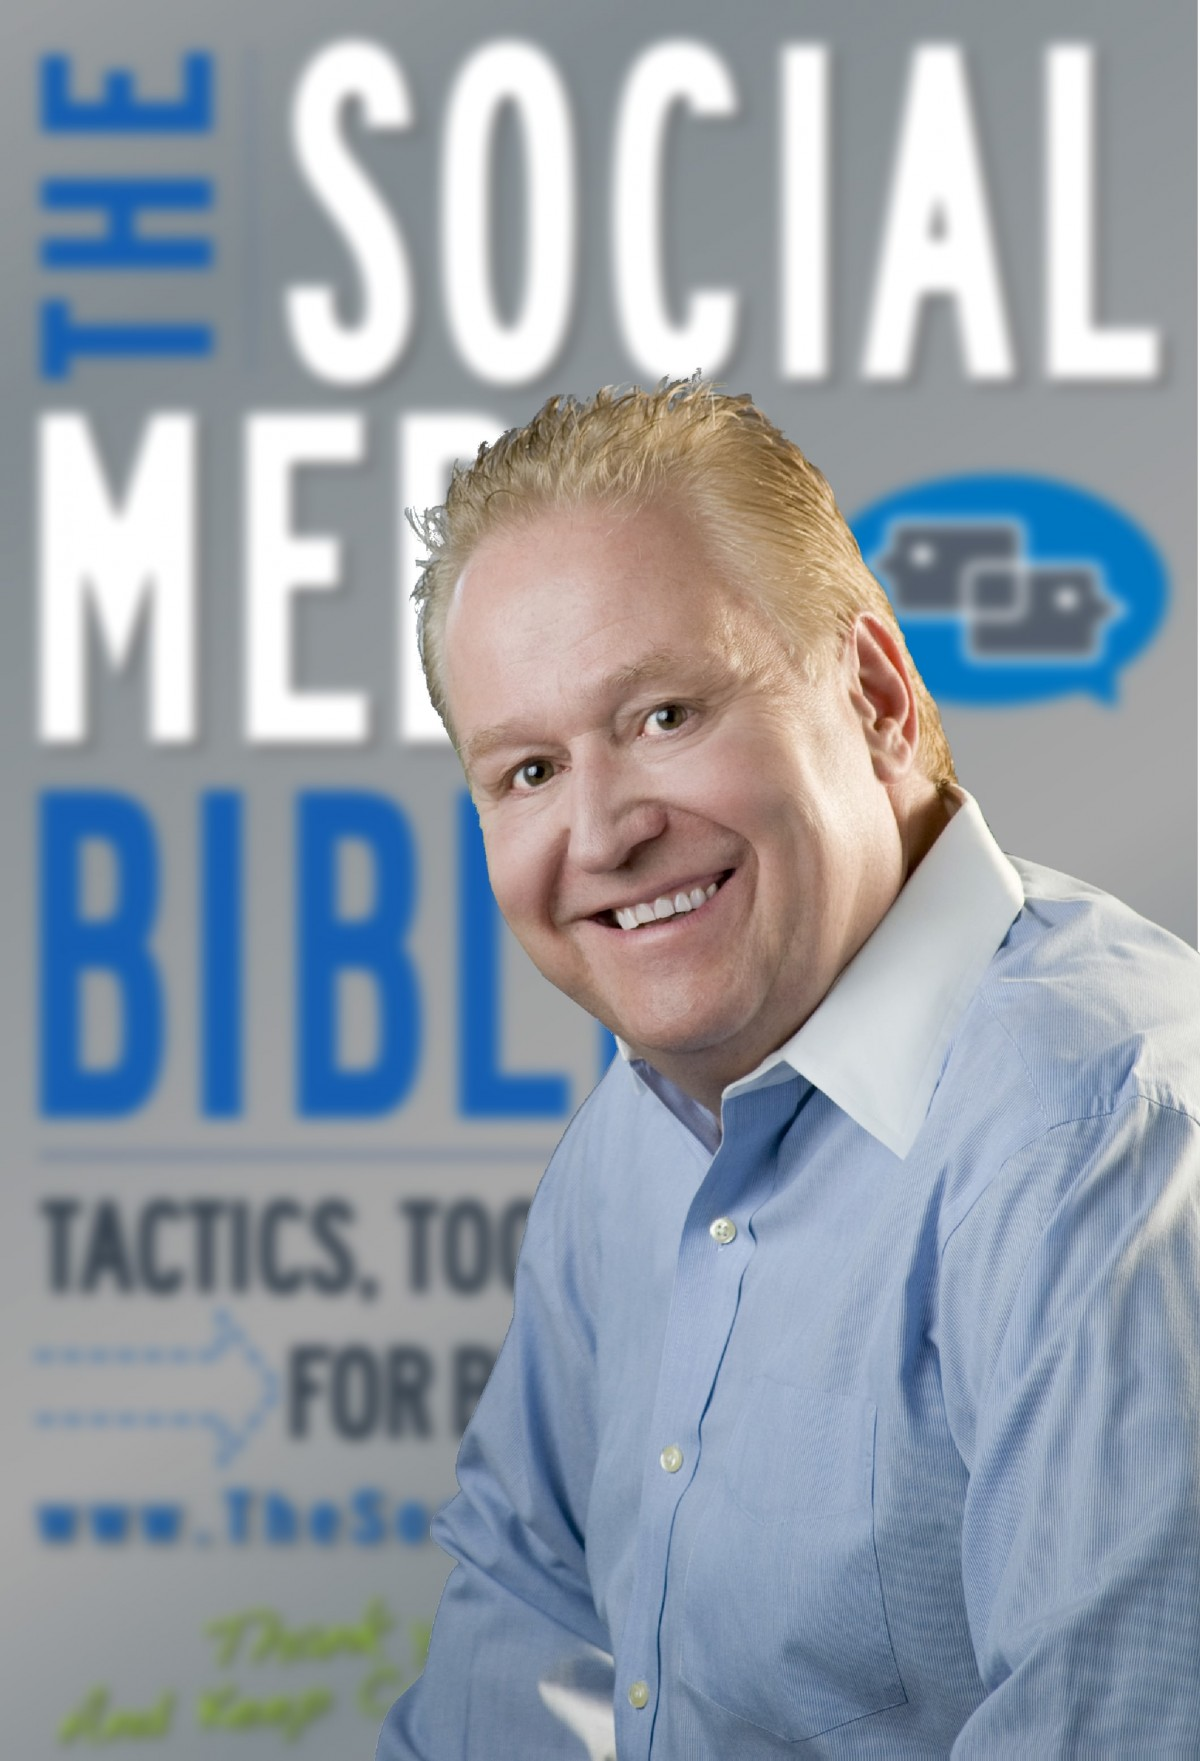 Lon-Safko-Social-Media-Bible